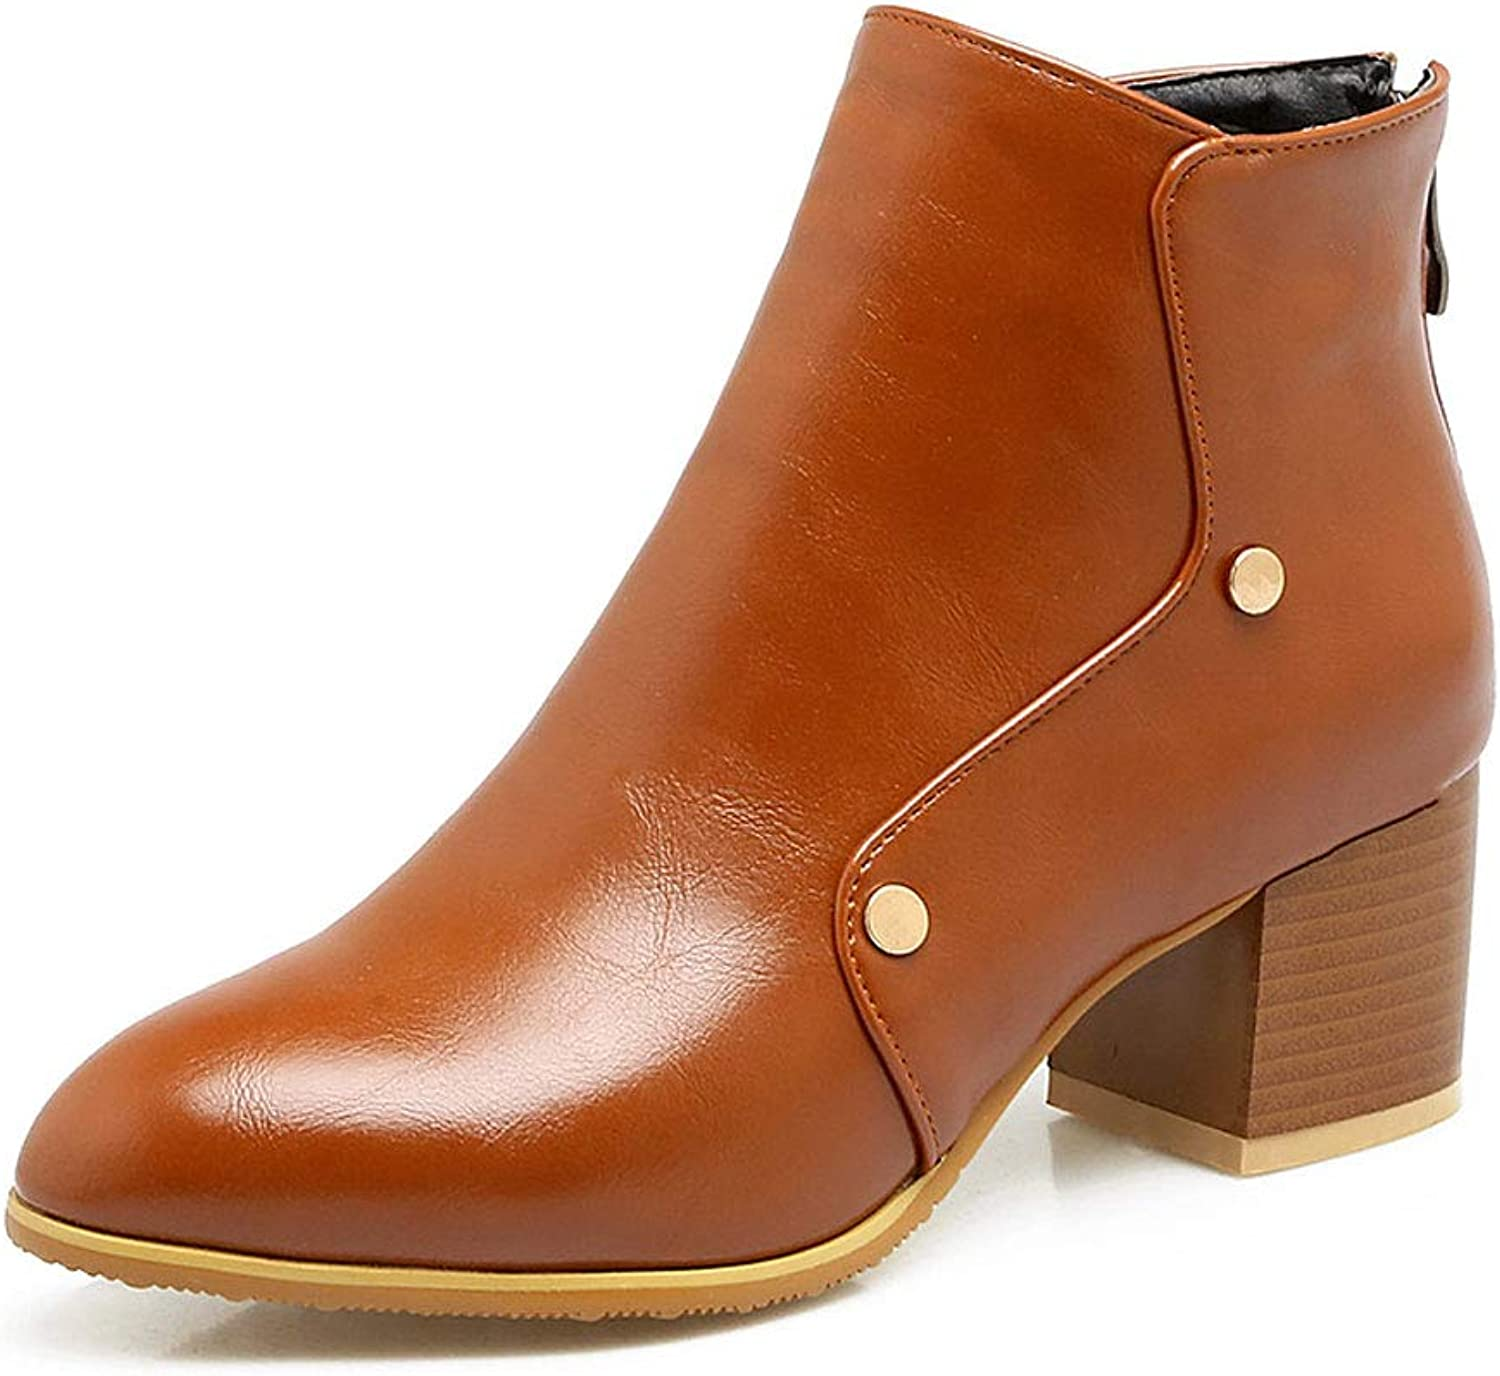 Casual Ankle Boots, High Heel Low Tube Martin Boots Thick with Back Zipper Short Boots Waterproof Round Head Knight Boots Ladies Rivet shoes